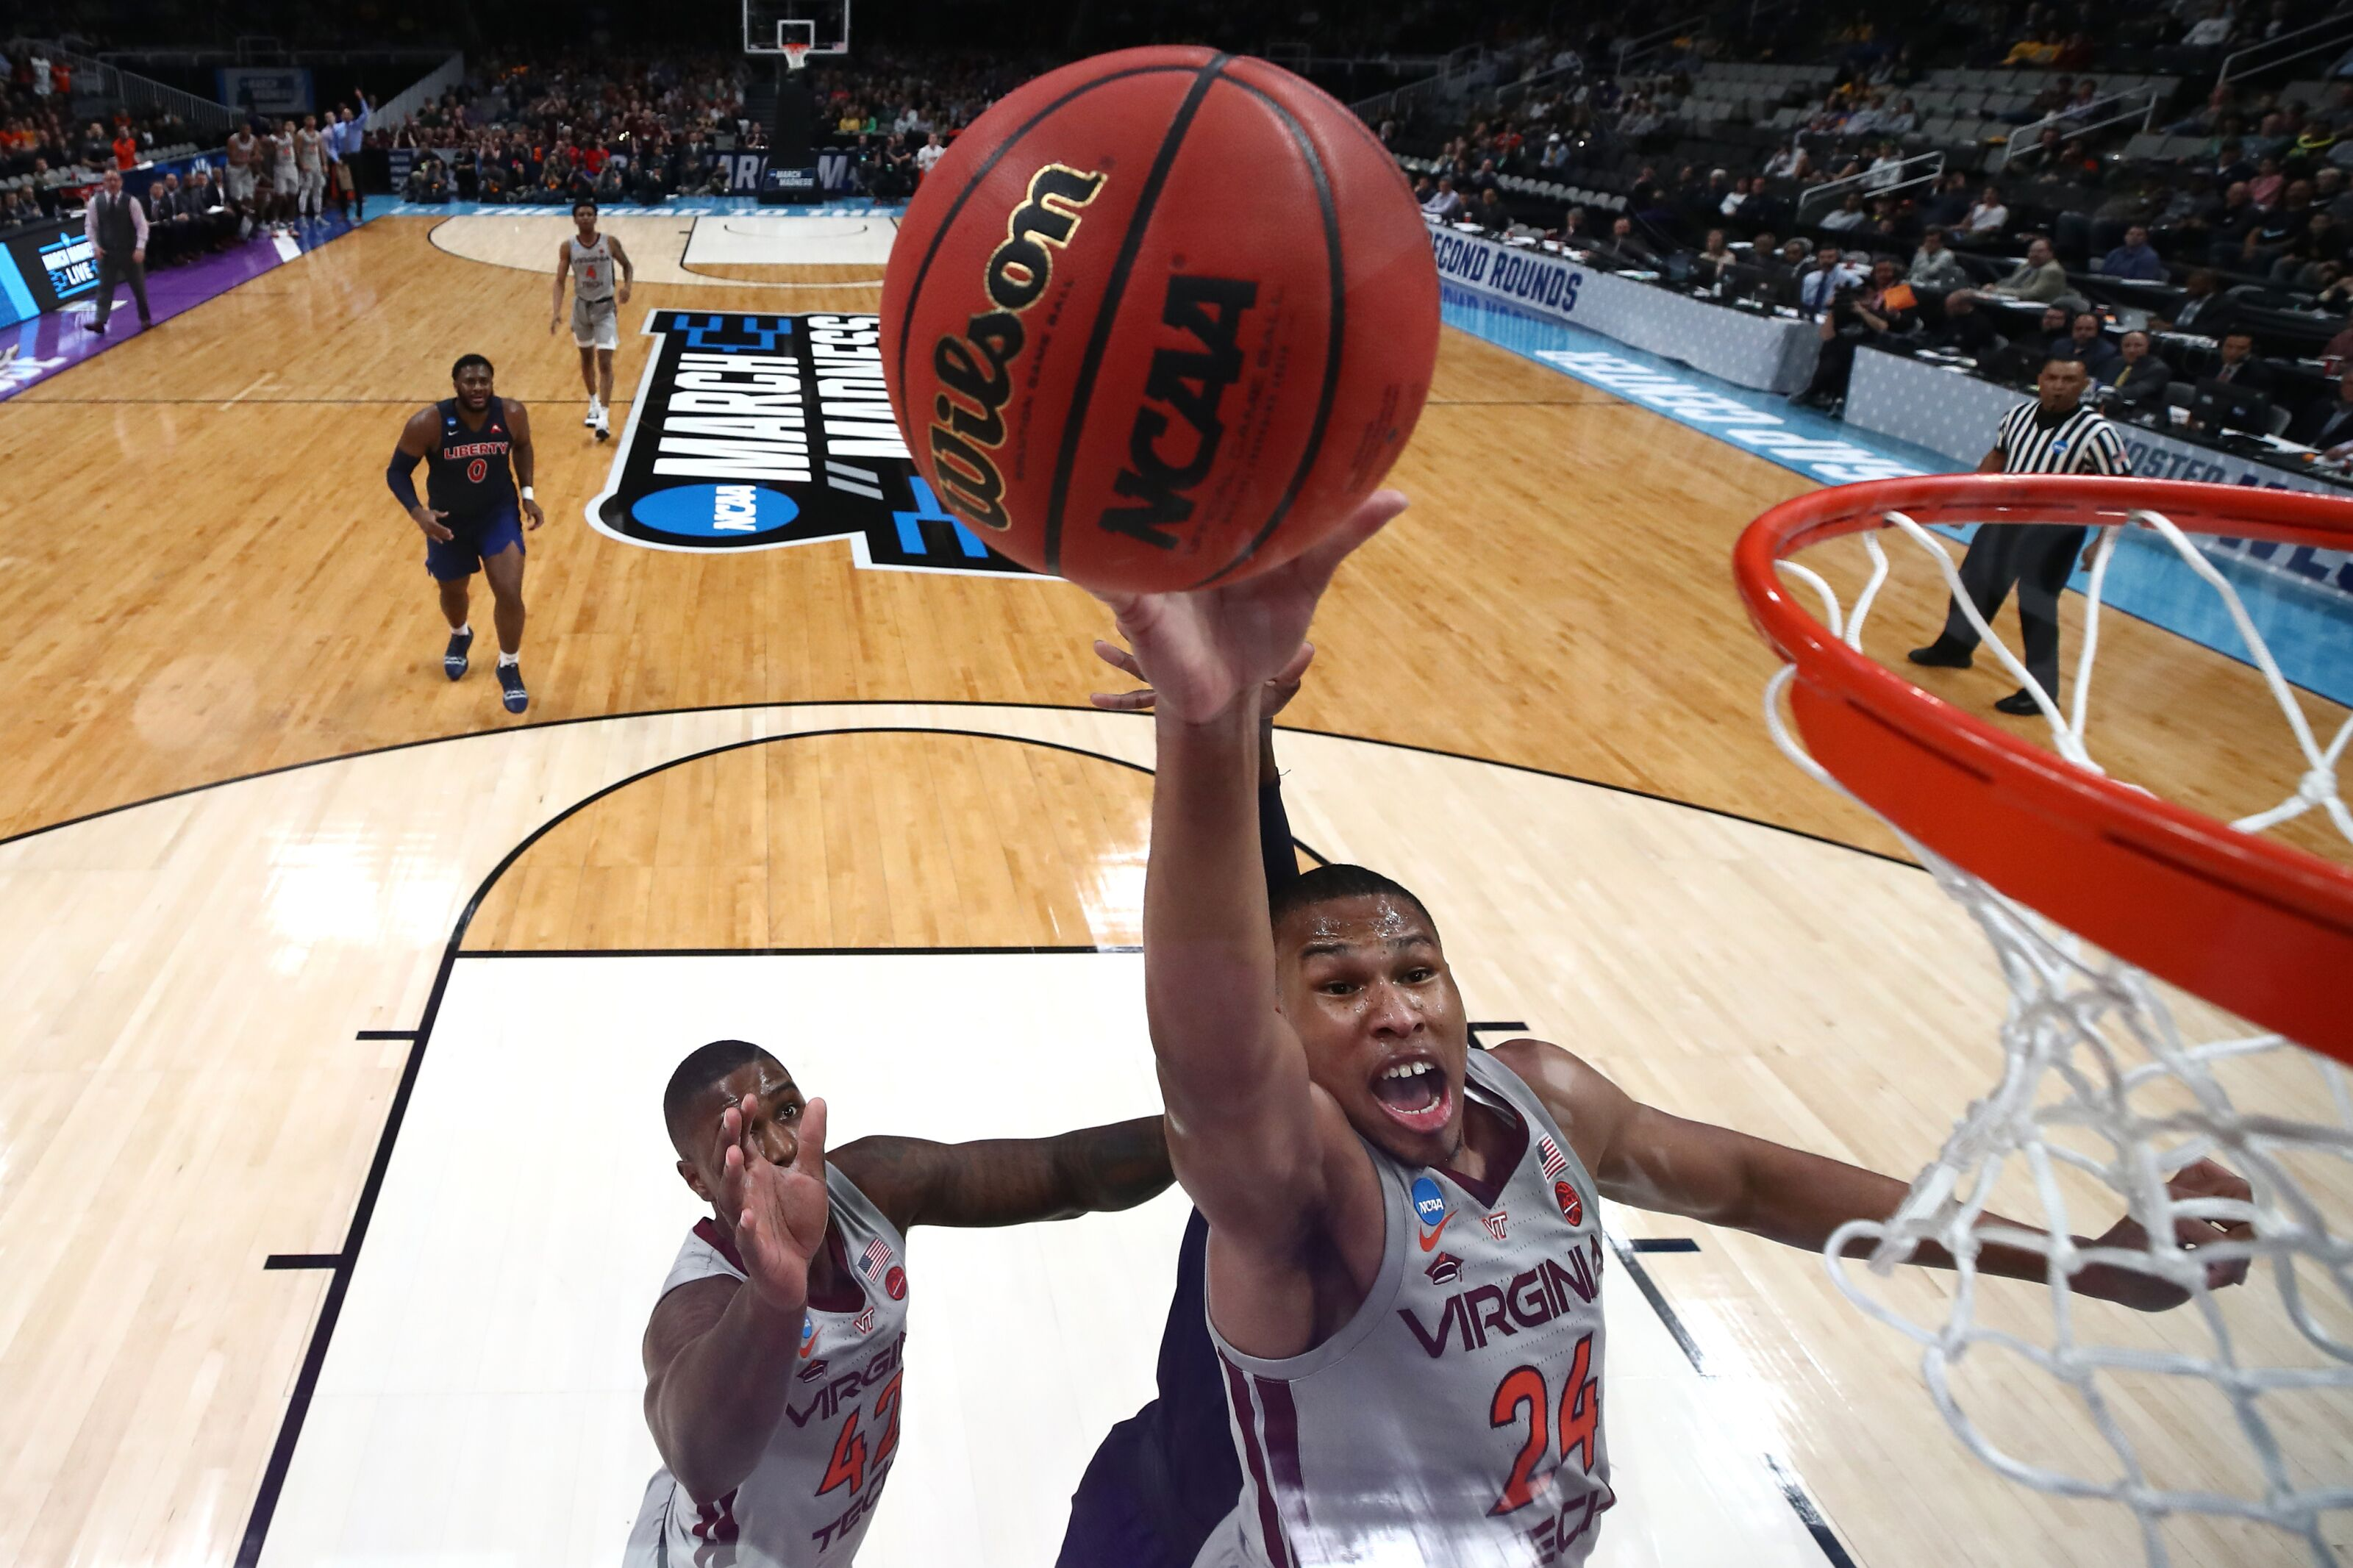 Florida basketball: Questions abound on Kerry Blackshear